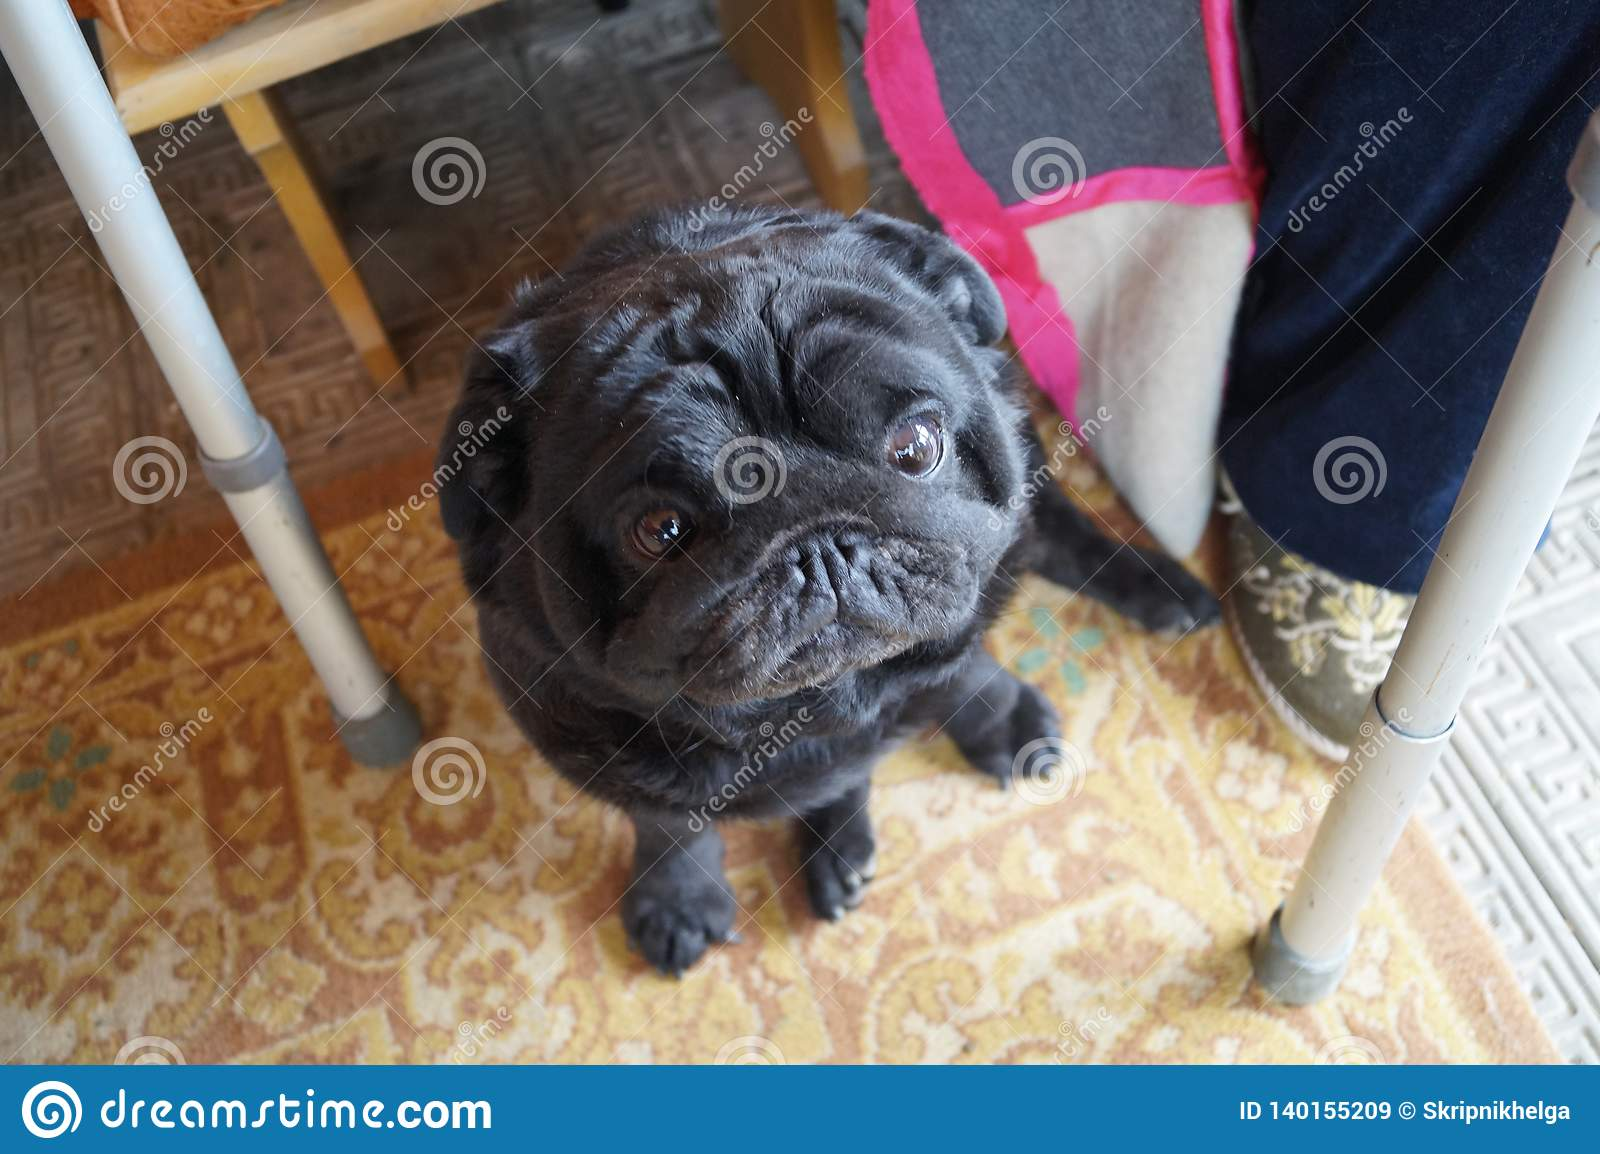 Pug about an elderly man. in the legs next to the walker for the disabled. the dog is sitting on the floor